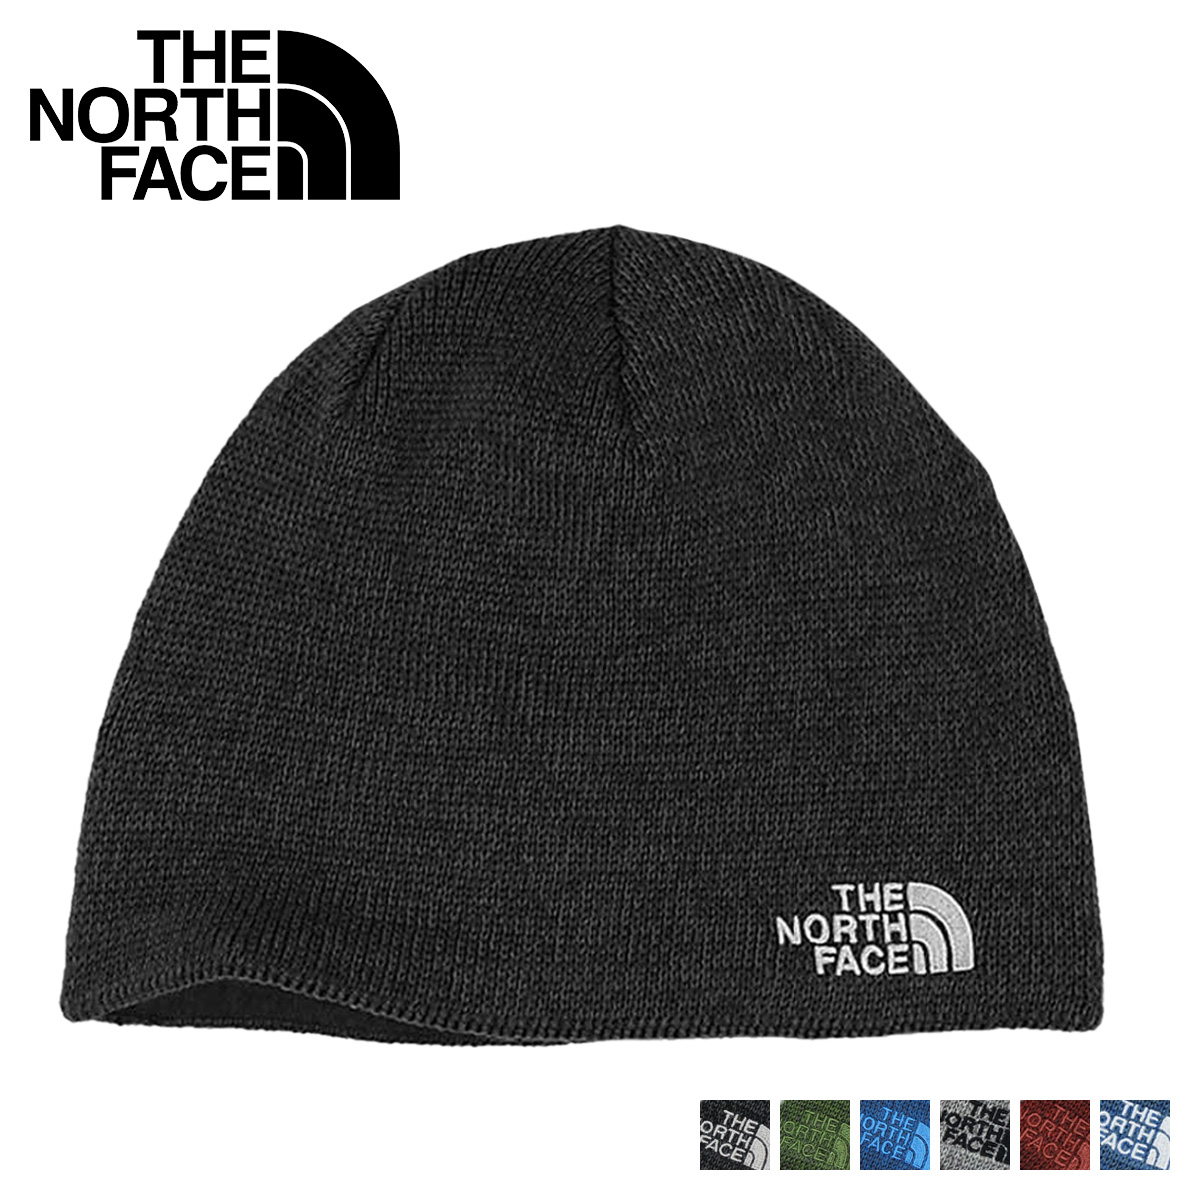 Whats Up Sports The North Face Knit Hat Beanie Cap 82020b36b4eb